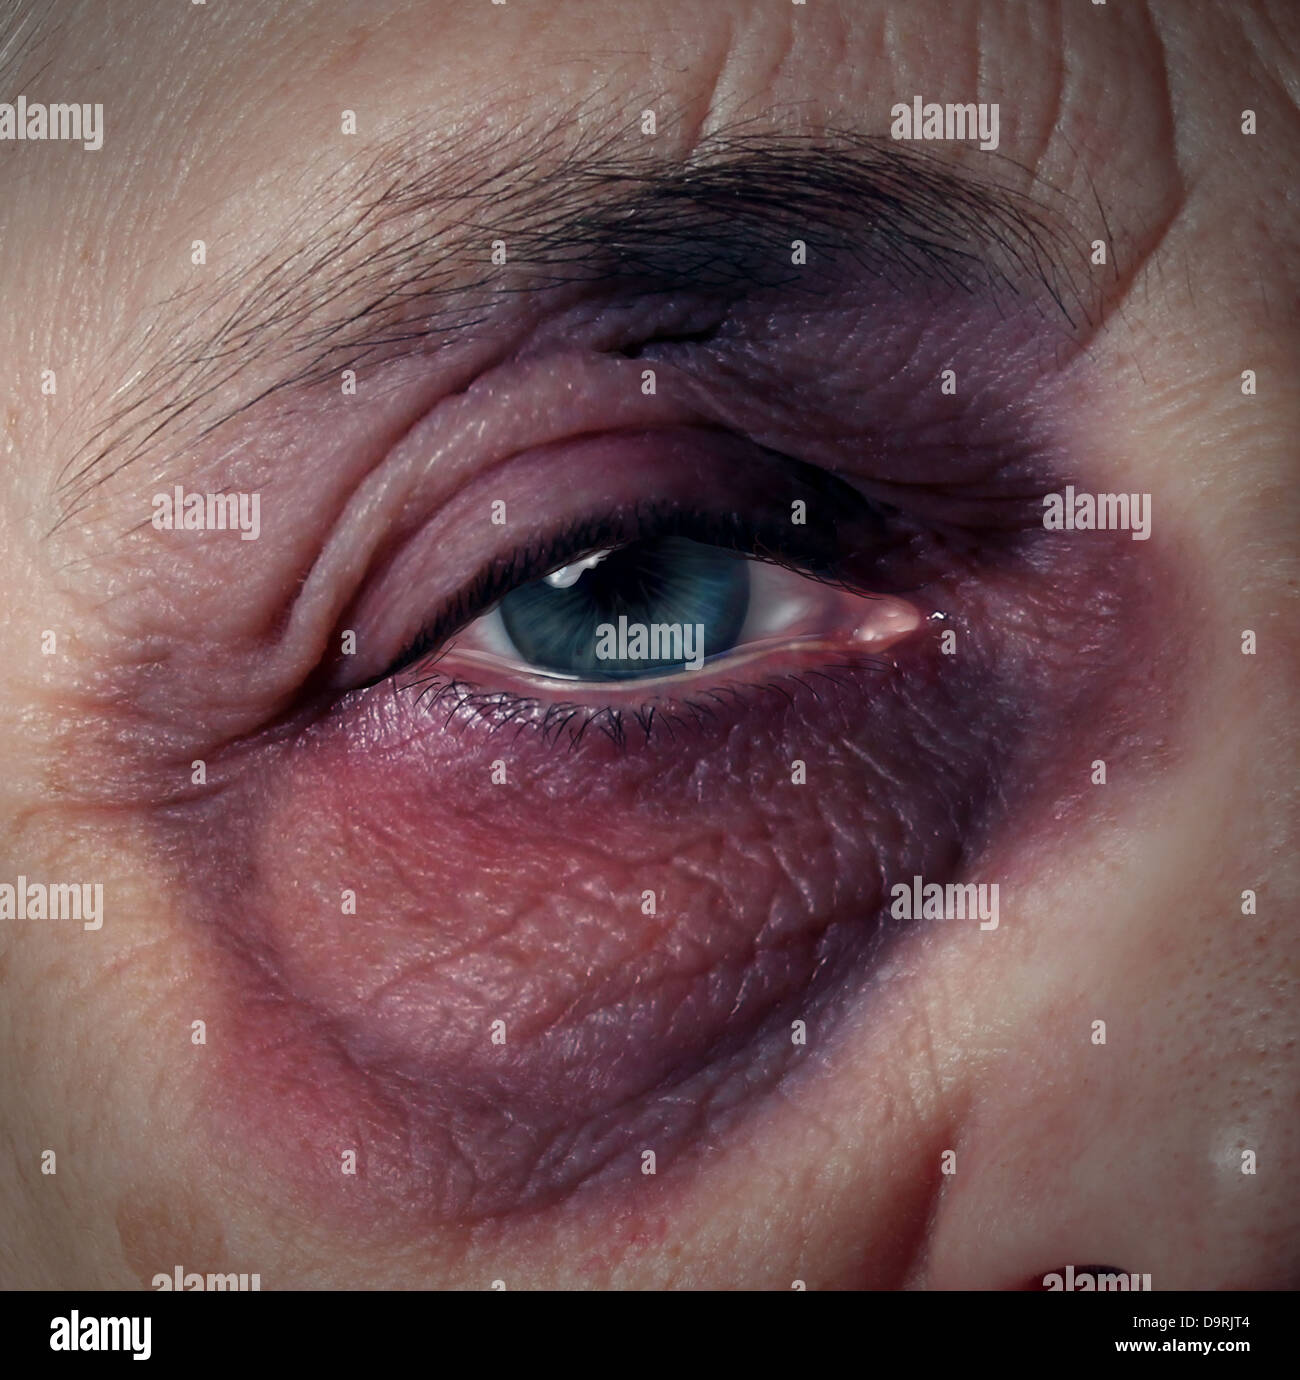 Senior abuse or elder mistreatment as an old person with a black eye bruised and injured from domestic violence - Stock Image